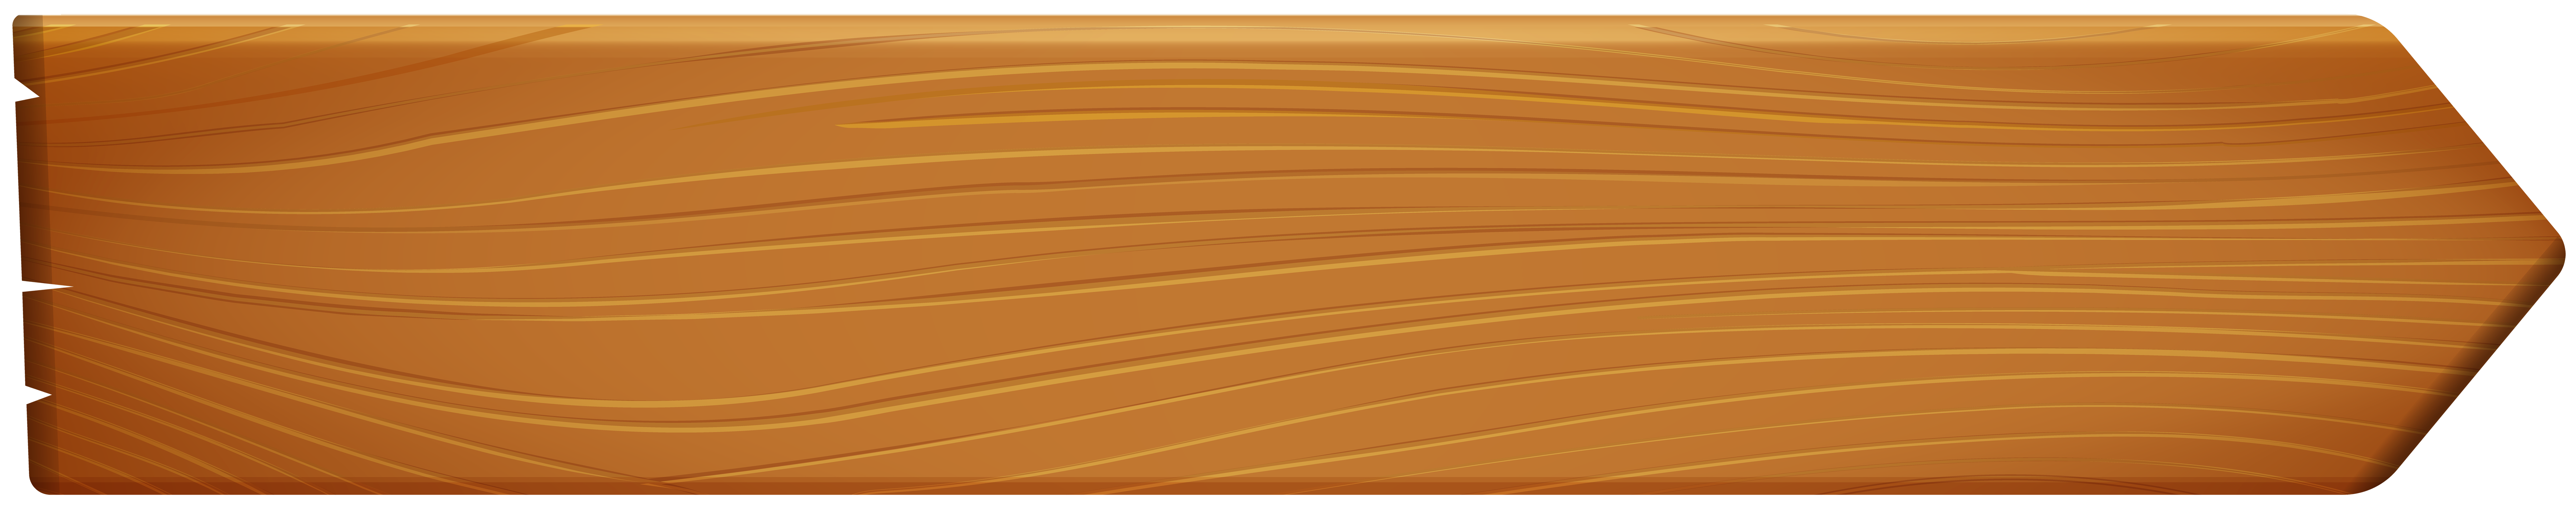 Wood png clipart - Clipground